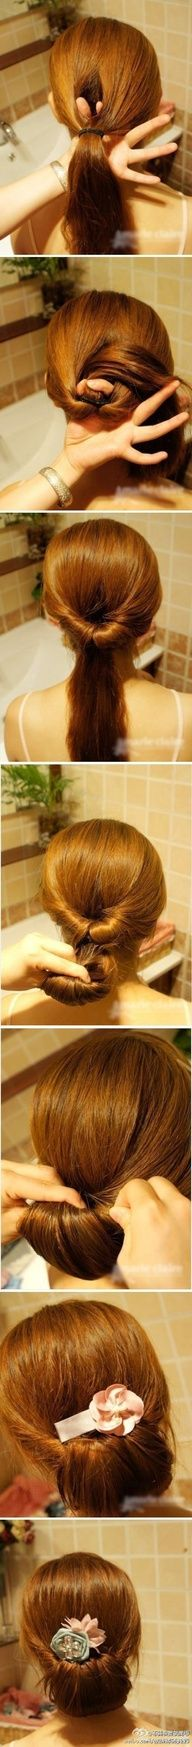 Very cute!  Very easy to do! BUT I think my hair is way to thick because it fell out before I even left the house for work, so came to work with a ugly bun!  So try it if you have thin hair